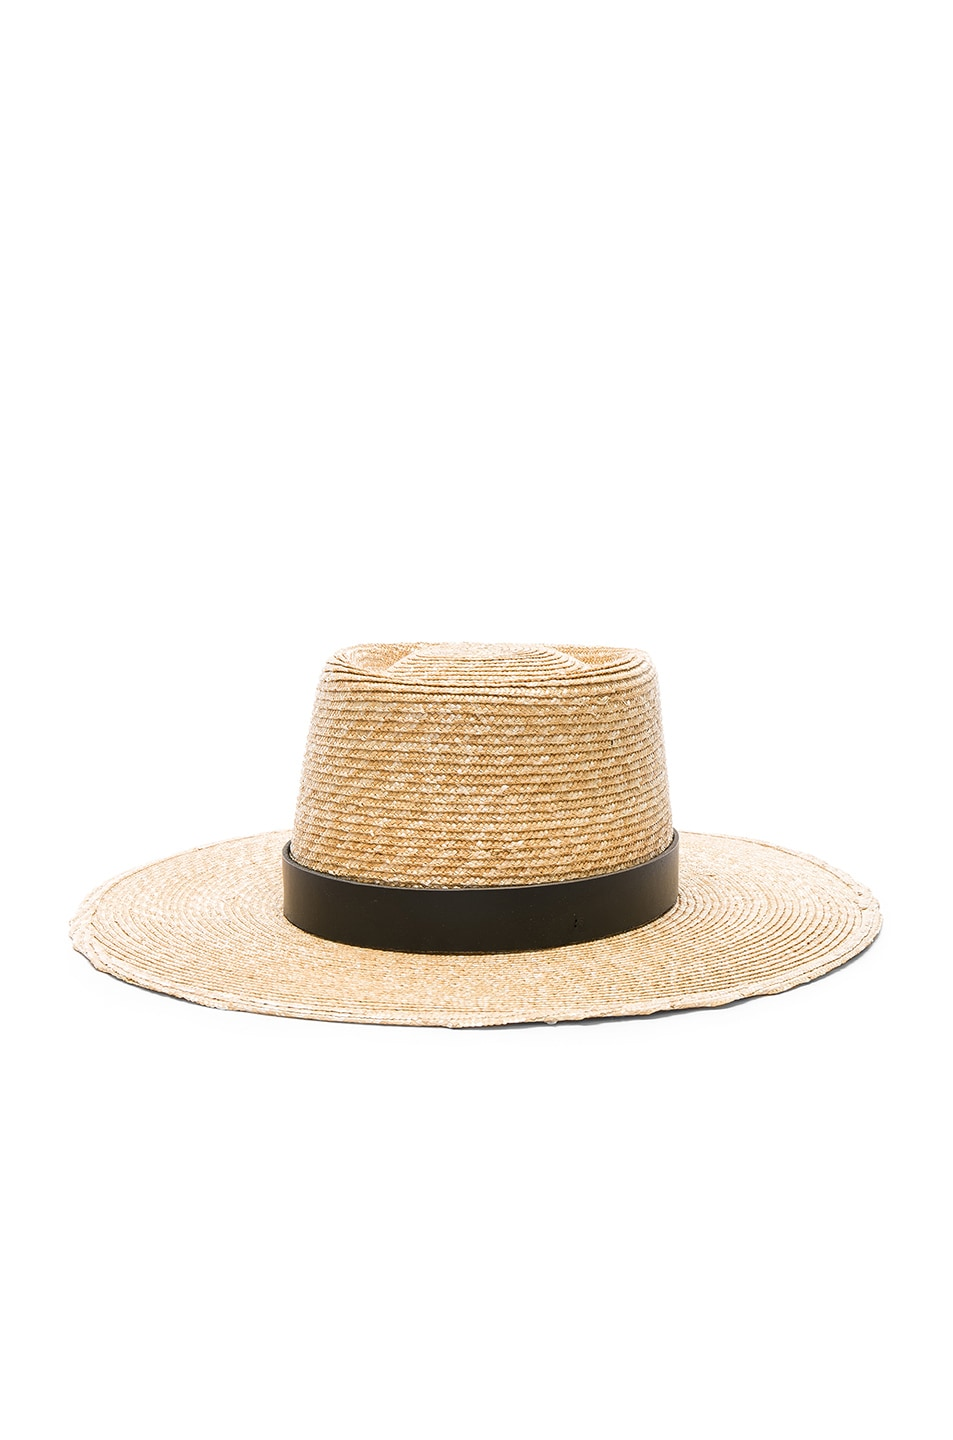 Image 2 of Janessa Leone Ruth Boater Hat in Natural & Black